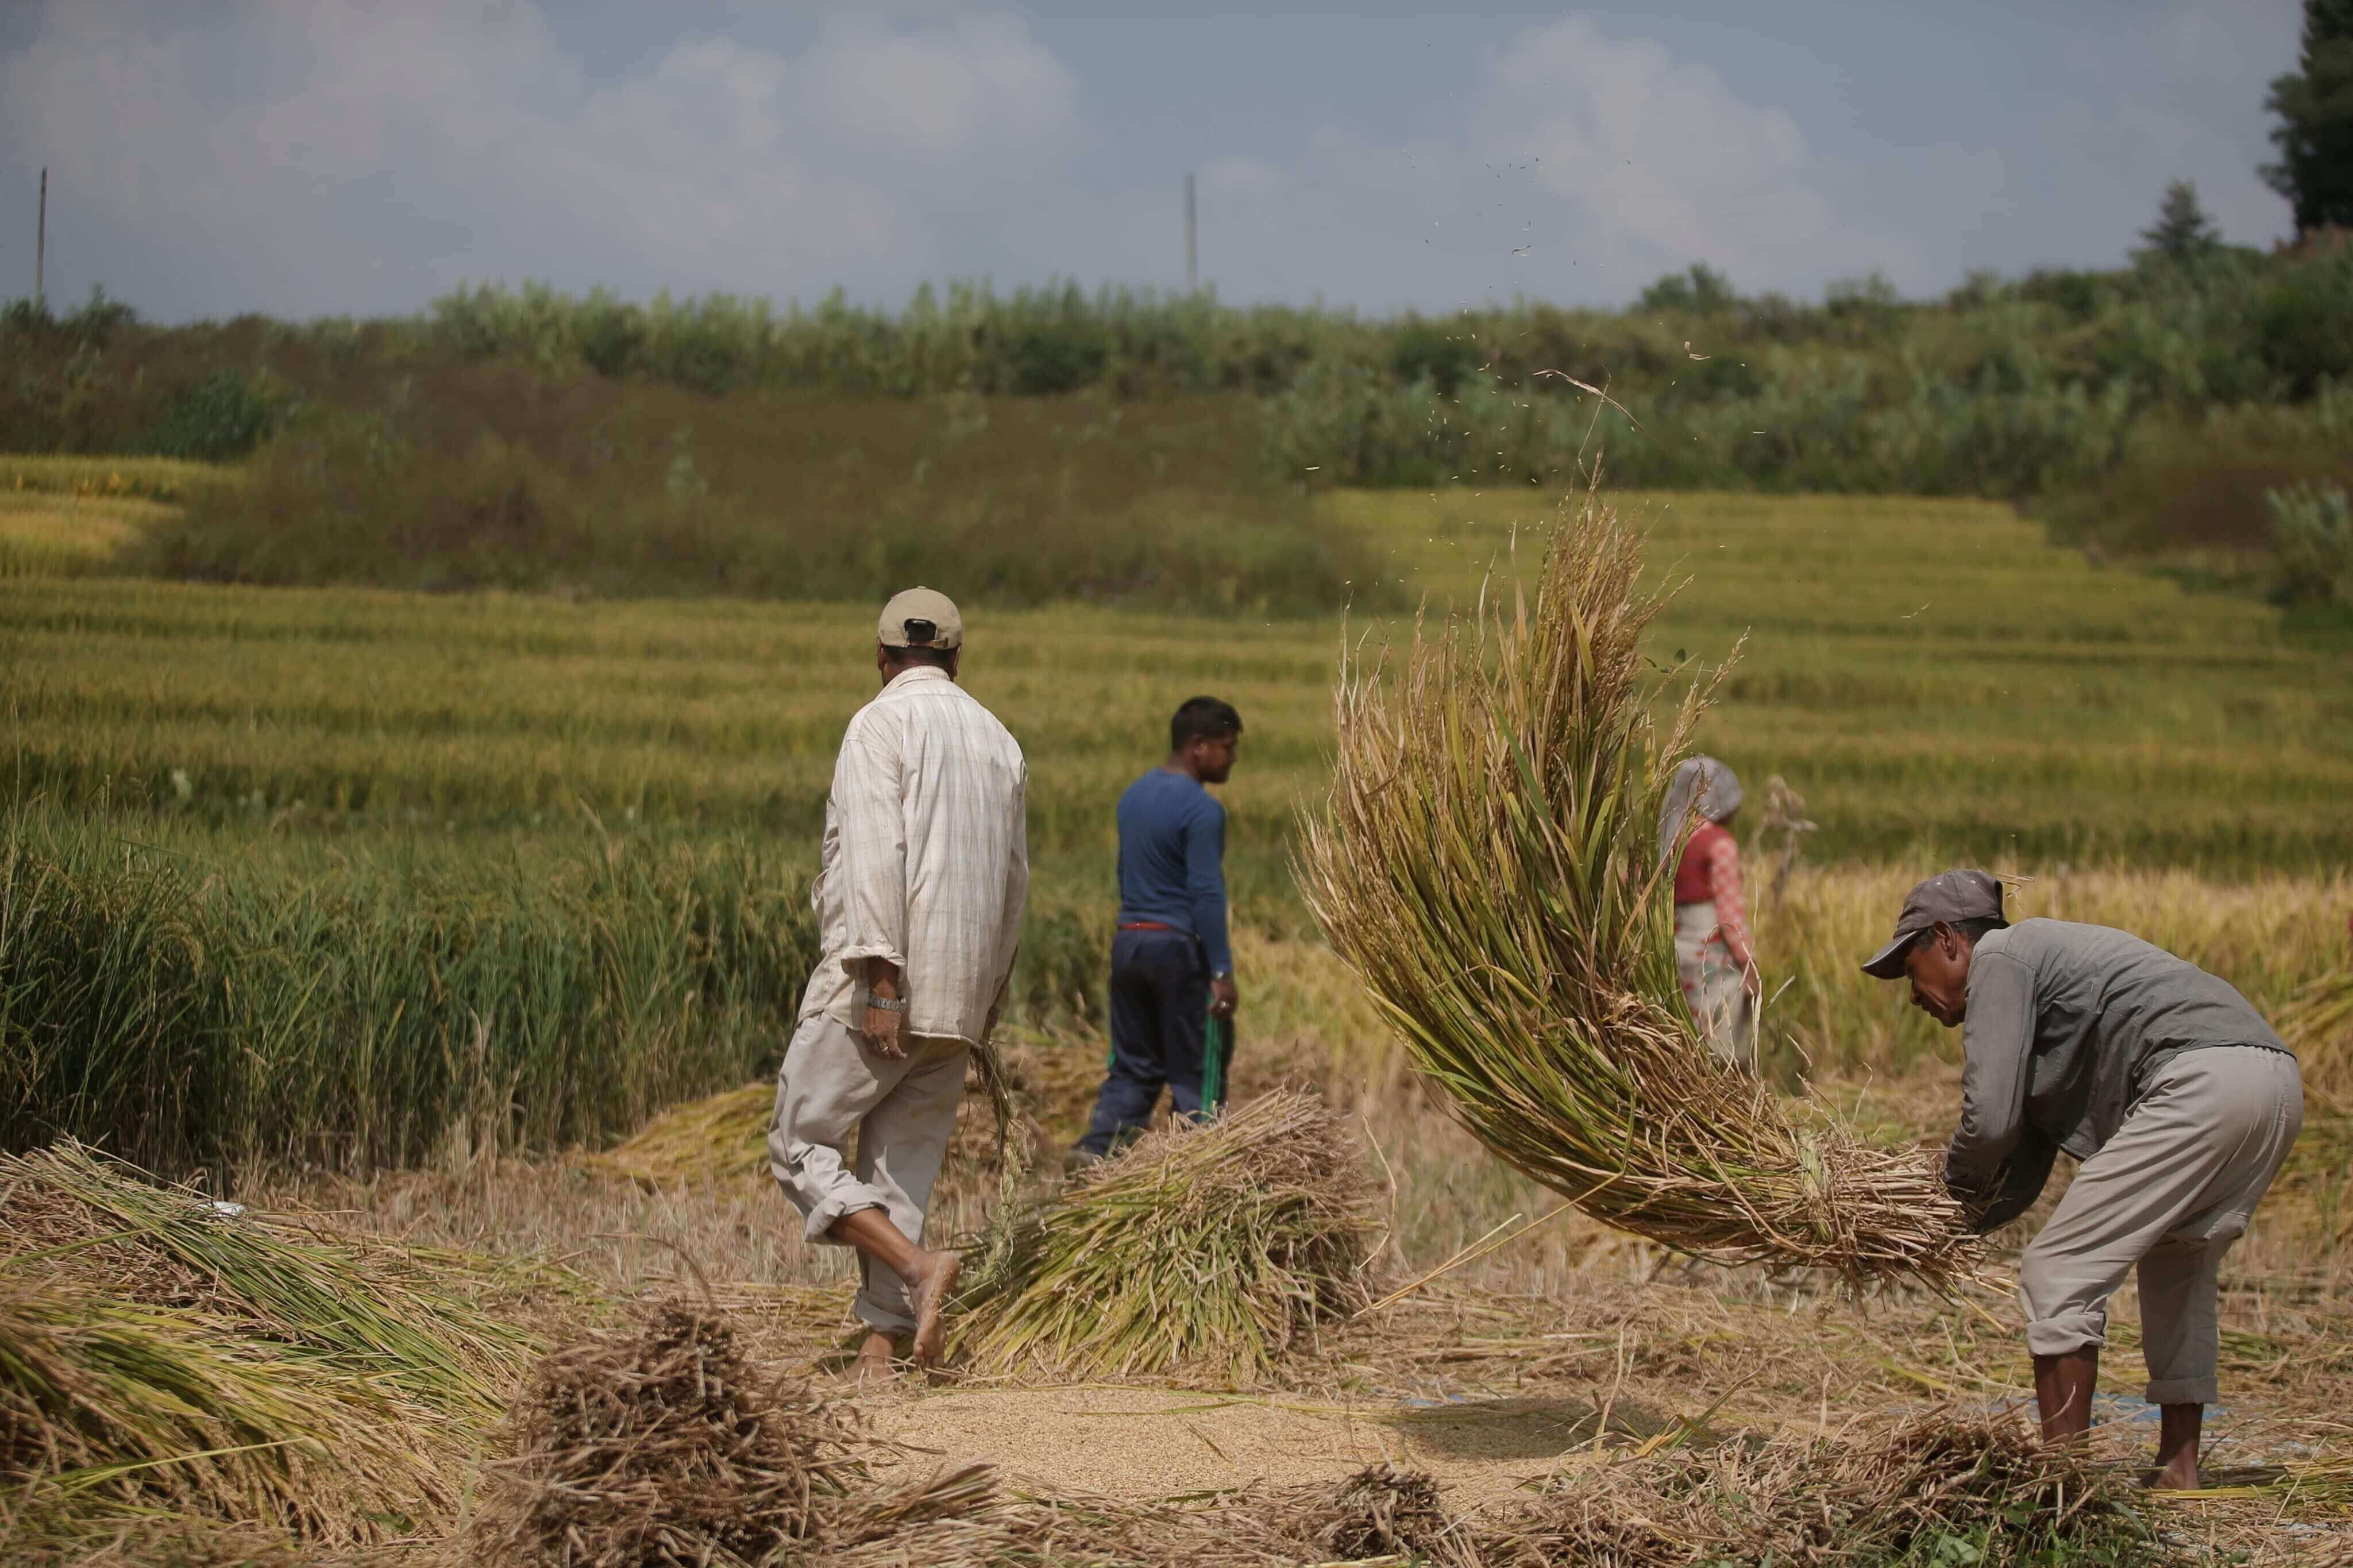 Farmers in Khokana harvest rice by hand, using traditional methods. Khokna on the outskirts of Kathmandu Valley still has much land dedicated to farming despite growing urbanisation.